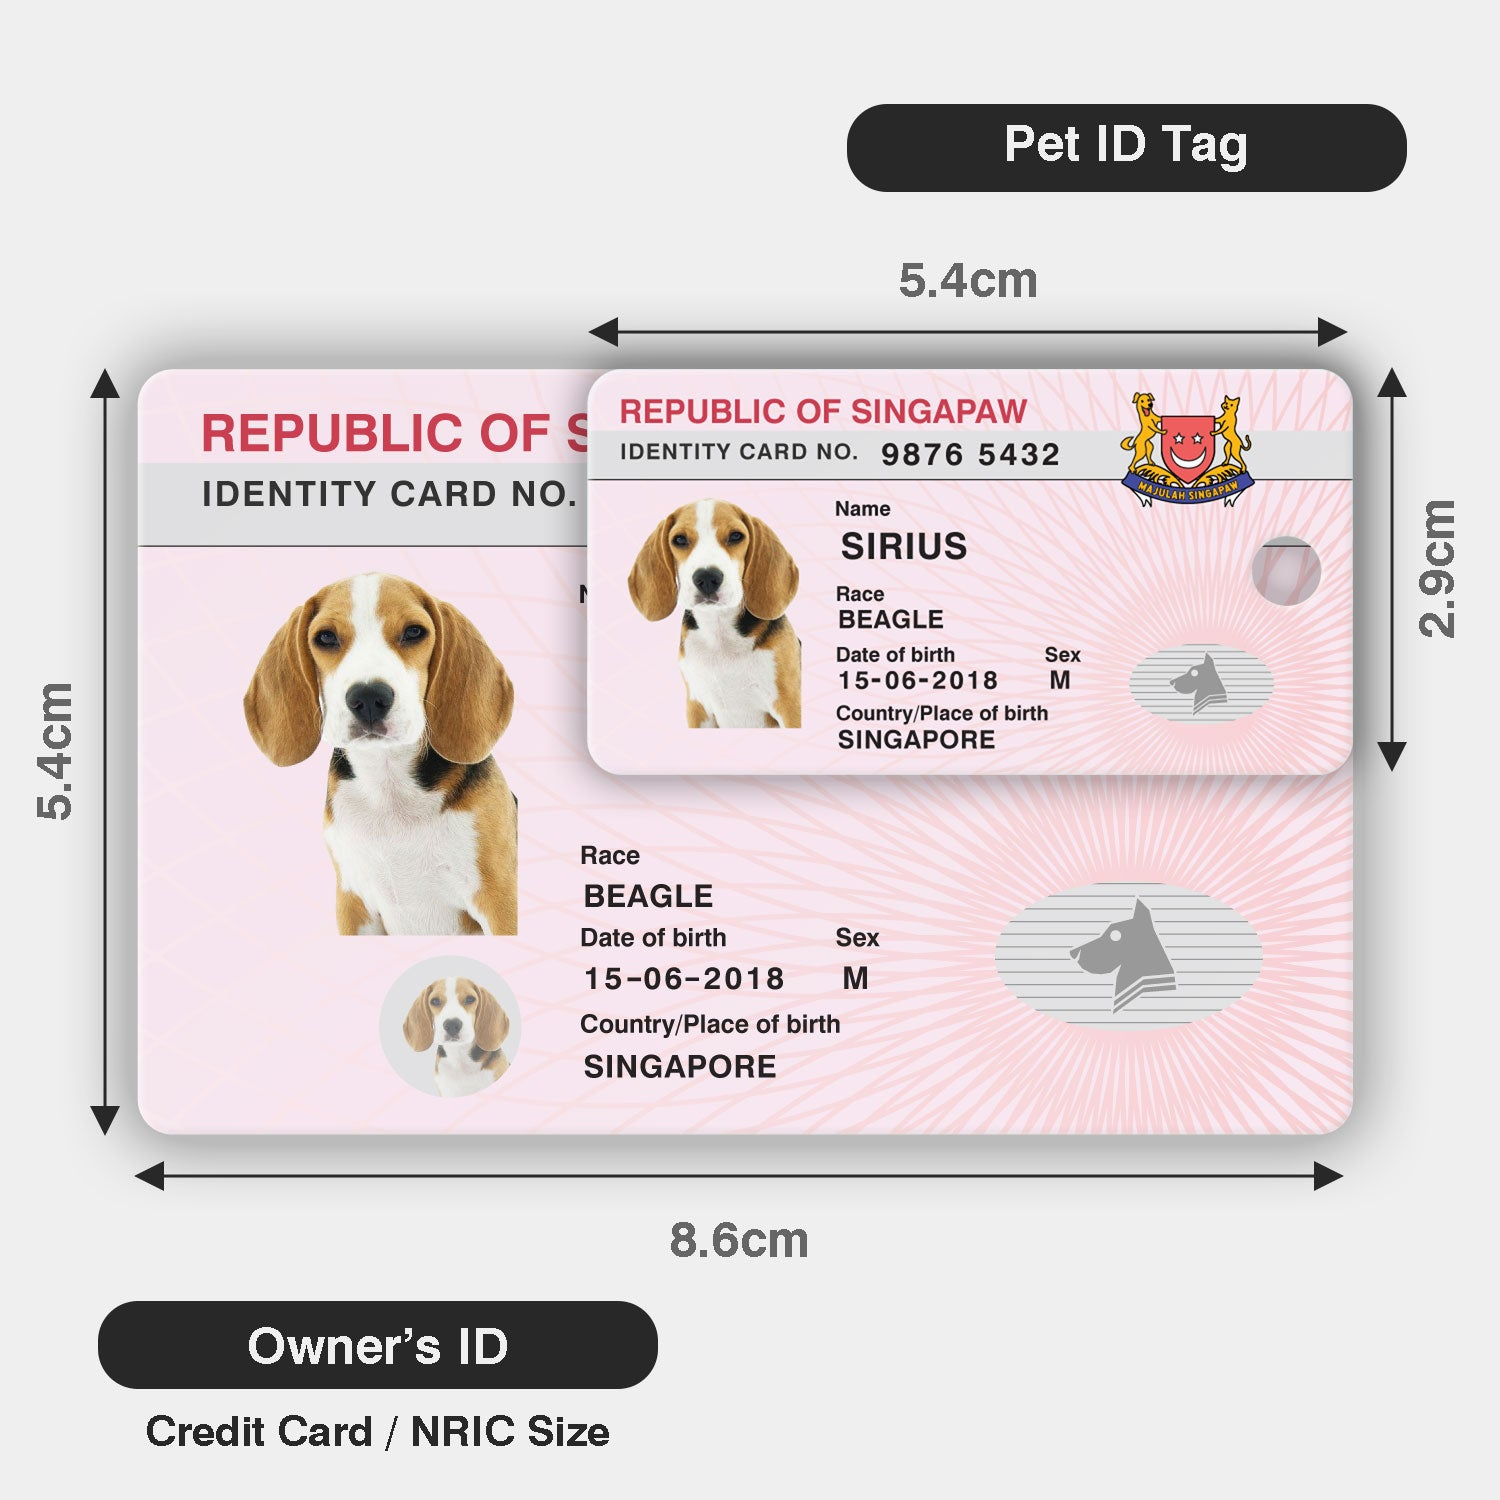 Scale of pet ID tag and owner's ID